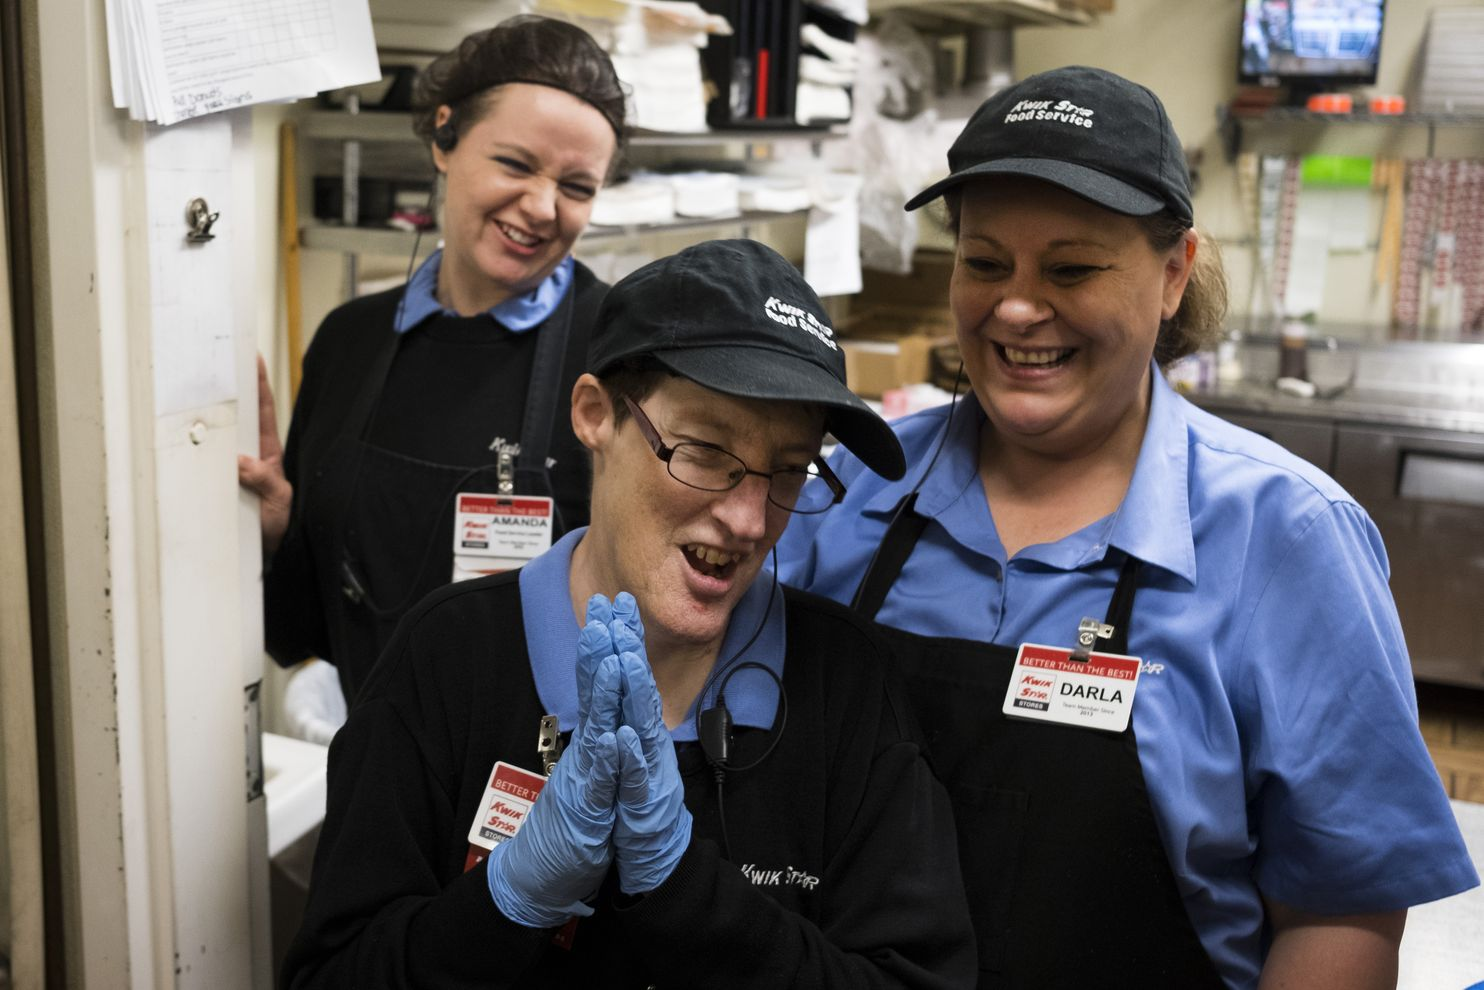 Julie Propp, 57, center, shares a laugh with her co-workers Amanda Torres, left, and Darla Tomlinson, right, at a Kwik Star convenience store in Marshalltown, Iowa. Kwik Star began hiring employees with disabilities when it became hard to find workers who could pass its background check. (Calla Kessler/For The Washington Post)